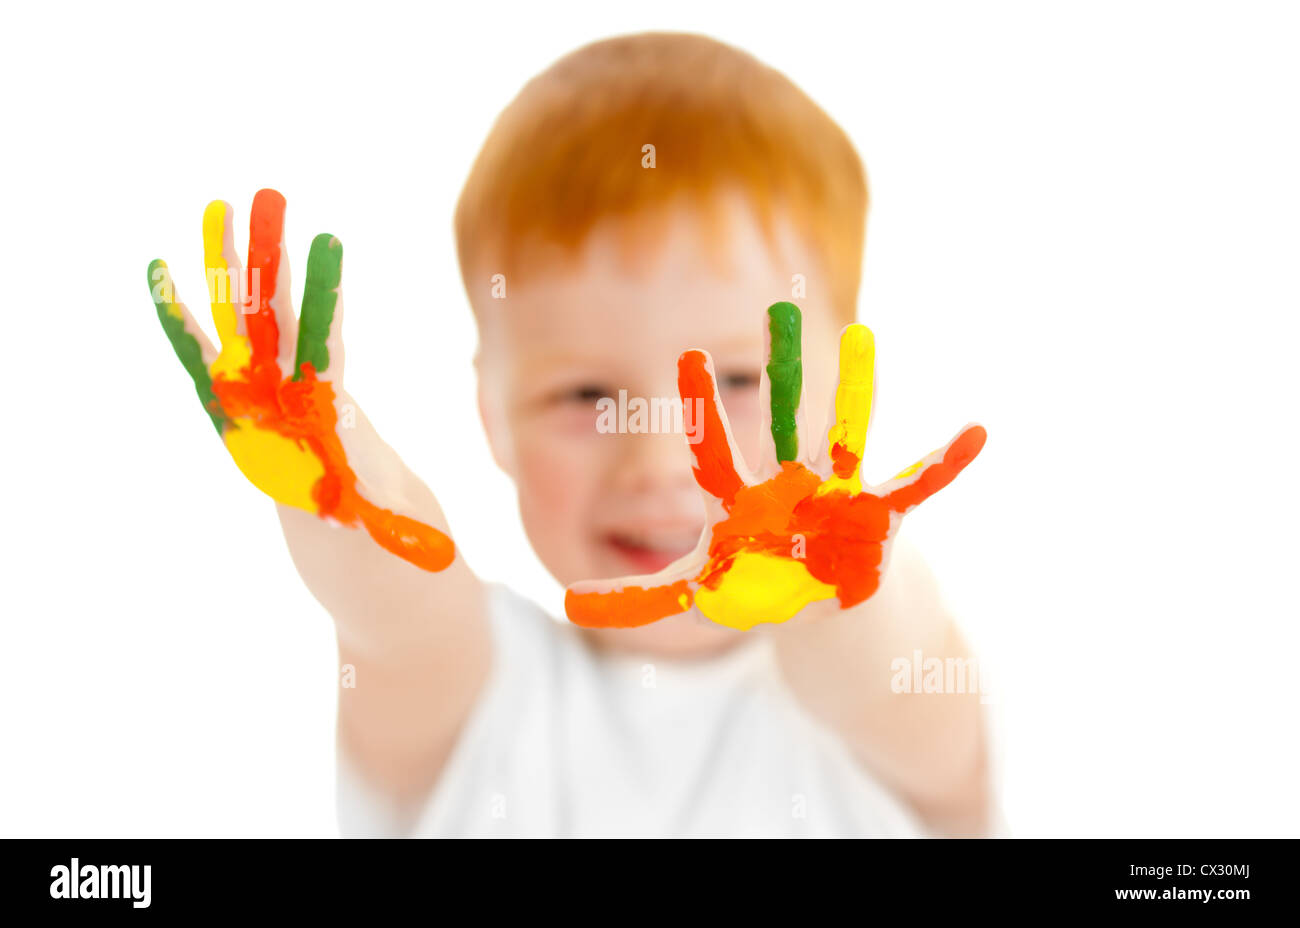 Adorable redheaded boy with focus on hands painted in bright colors Stock Photo